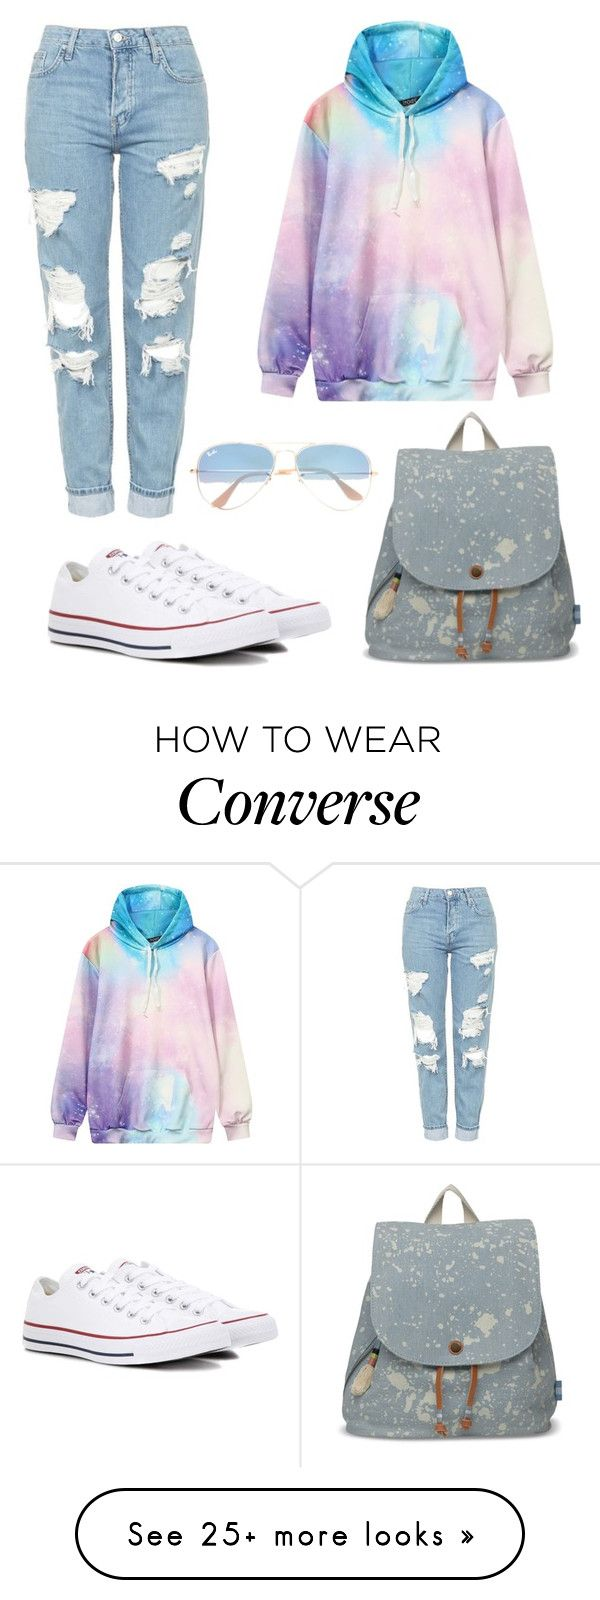 outfit of the day by suzyzorglos on Polyvore featuring Topshop, Converse, TOMS and Ray-Ban